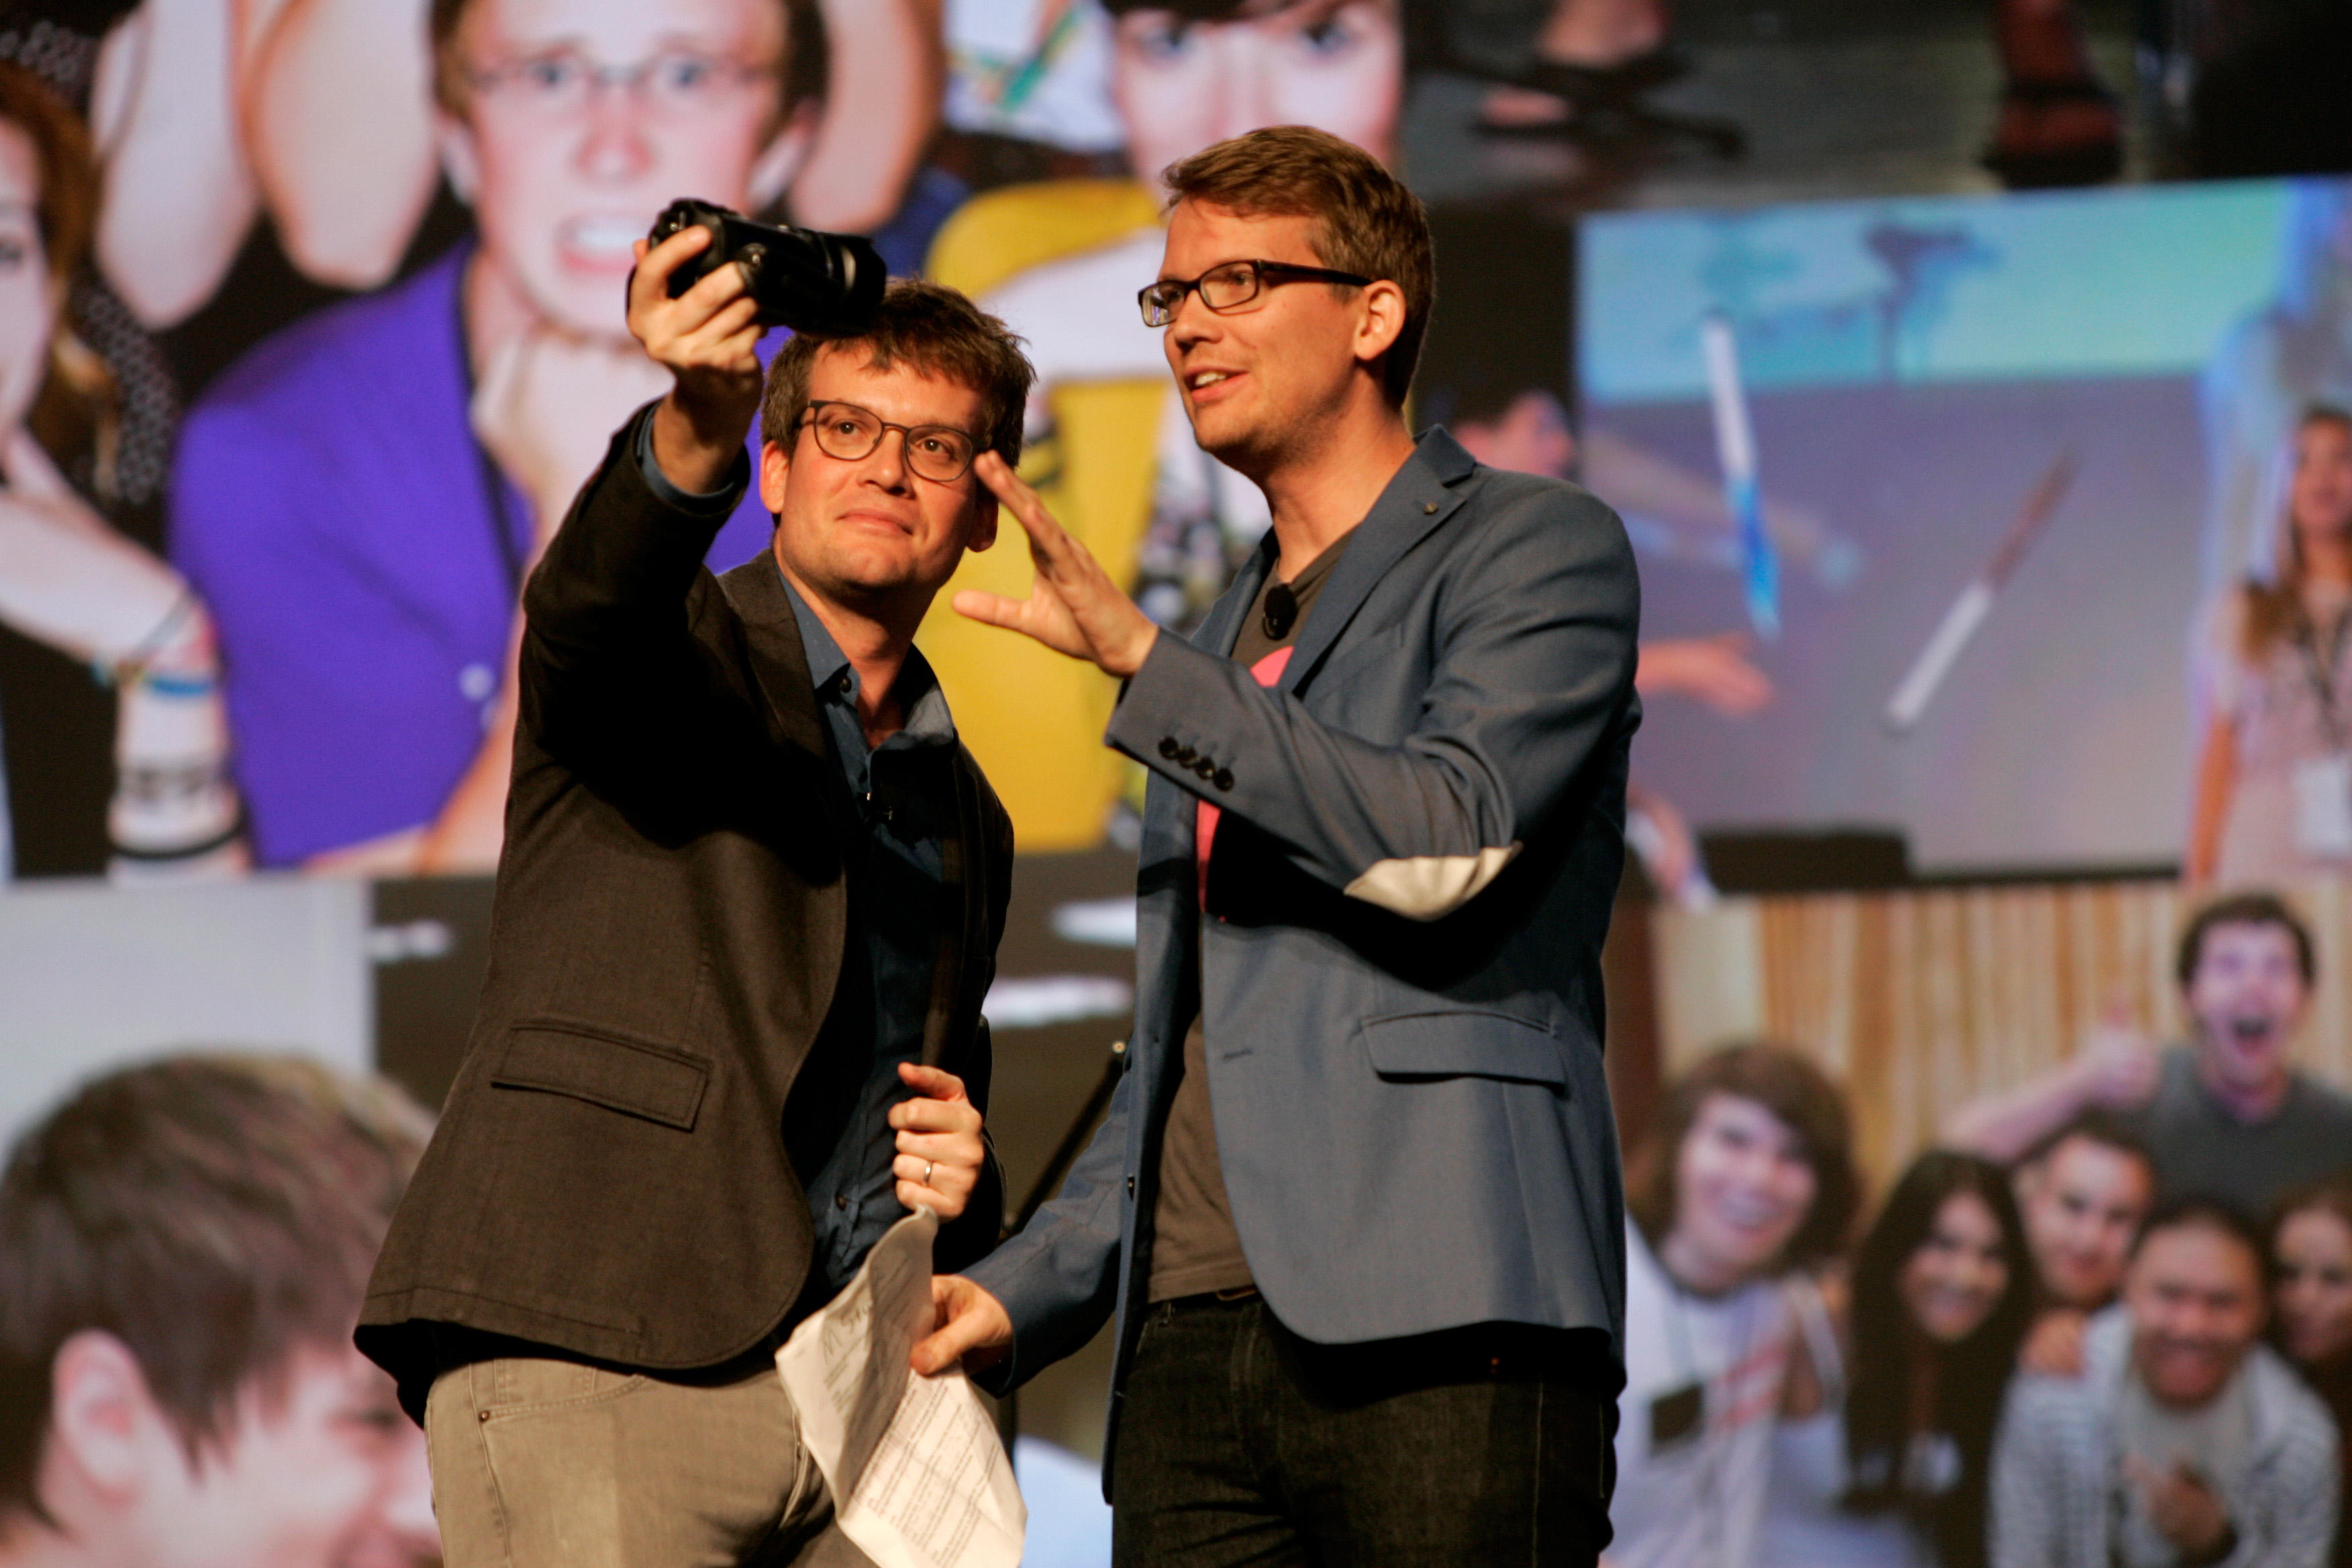 Hank Green and John Green stand on stage, shooting themselves with a video camera